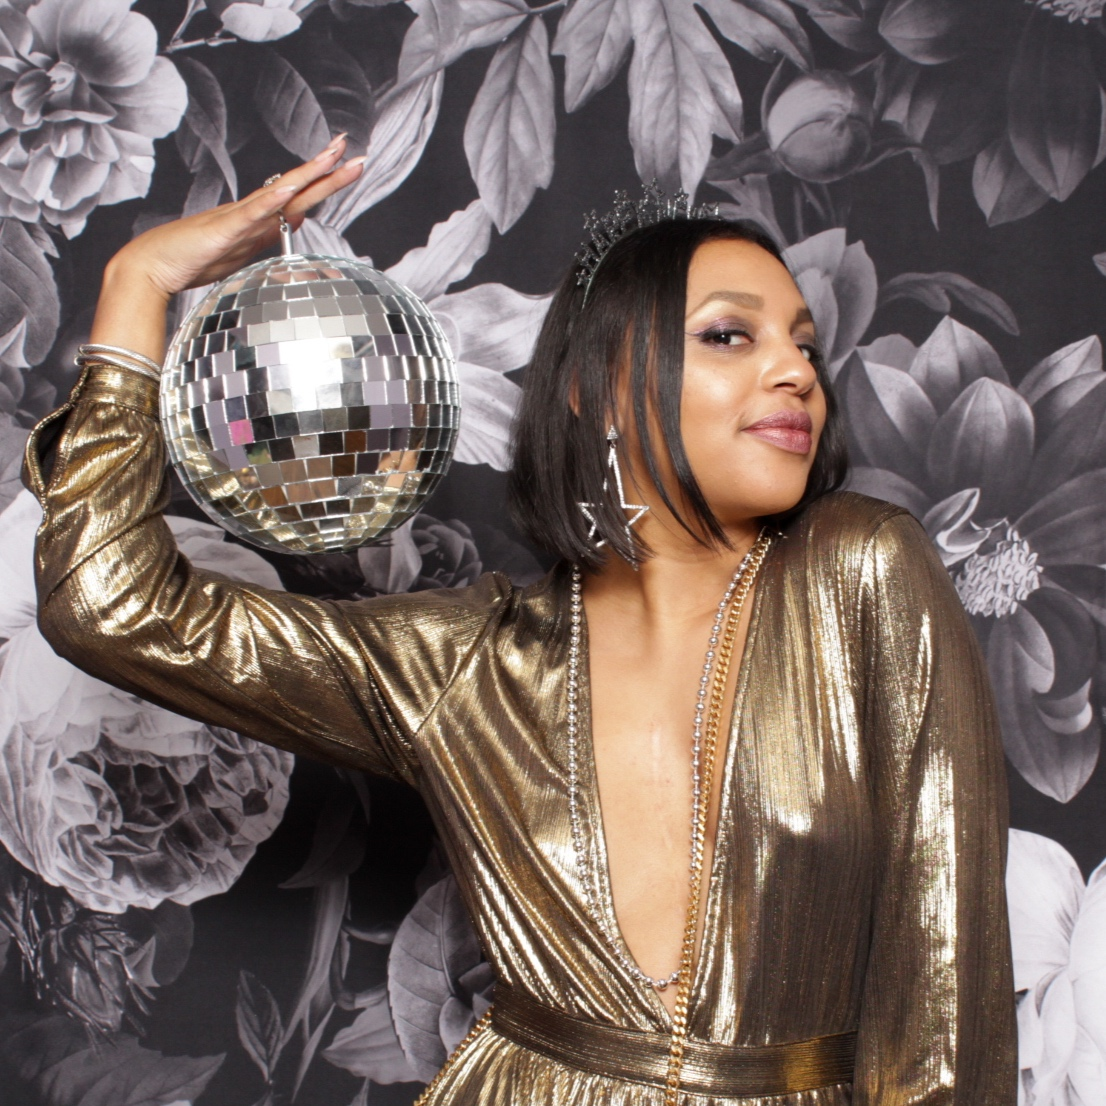 New Year's photo booth picture with black and white floral backdrop and woman holding a disco ball.